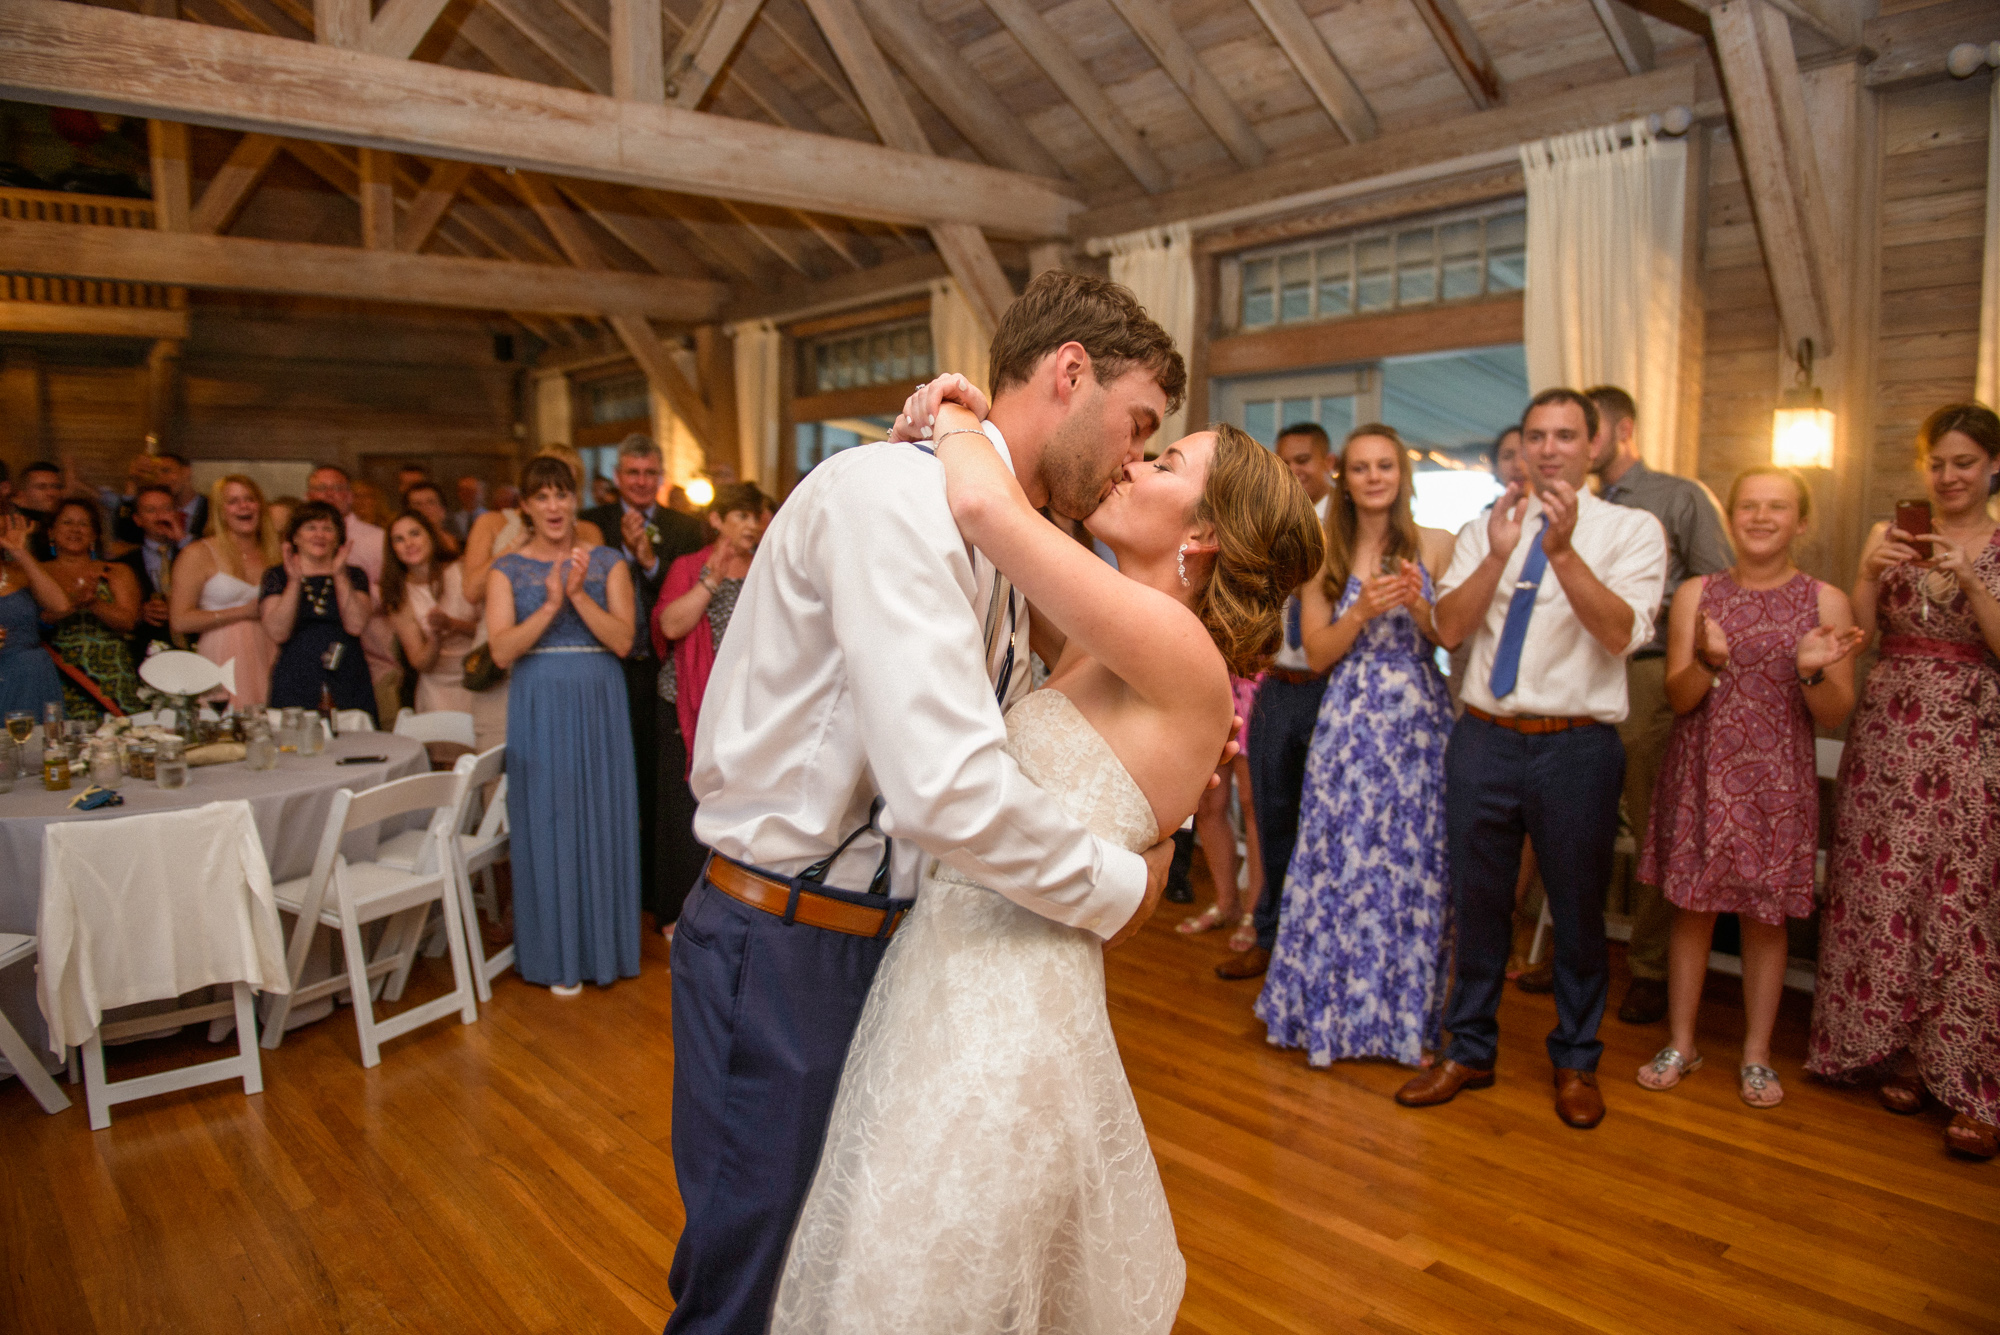 A bride and groom share their first dance at the East Chop Beach Club in Oak Bluffs photo by David Welch Photography